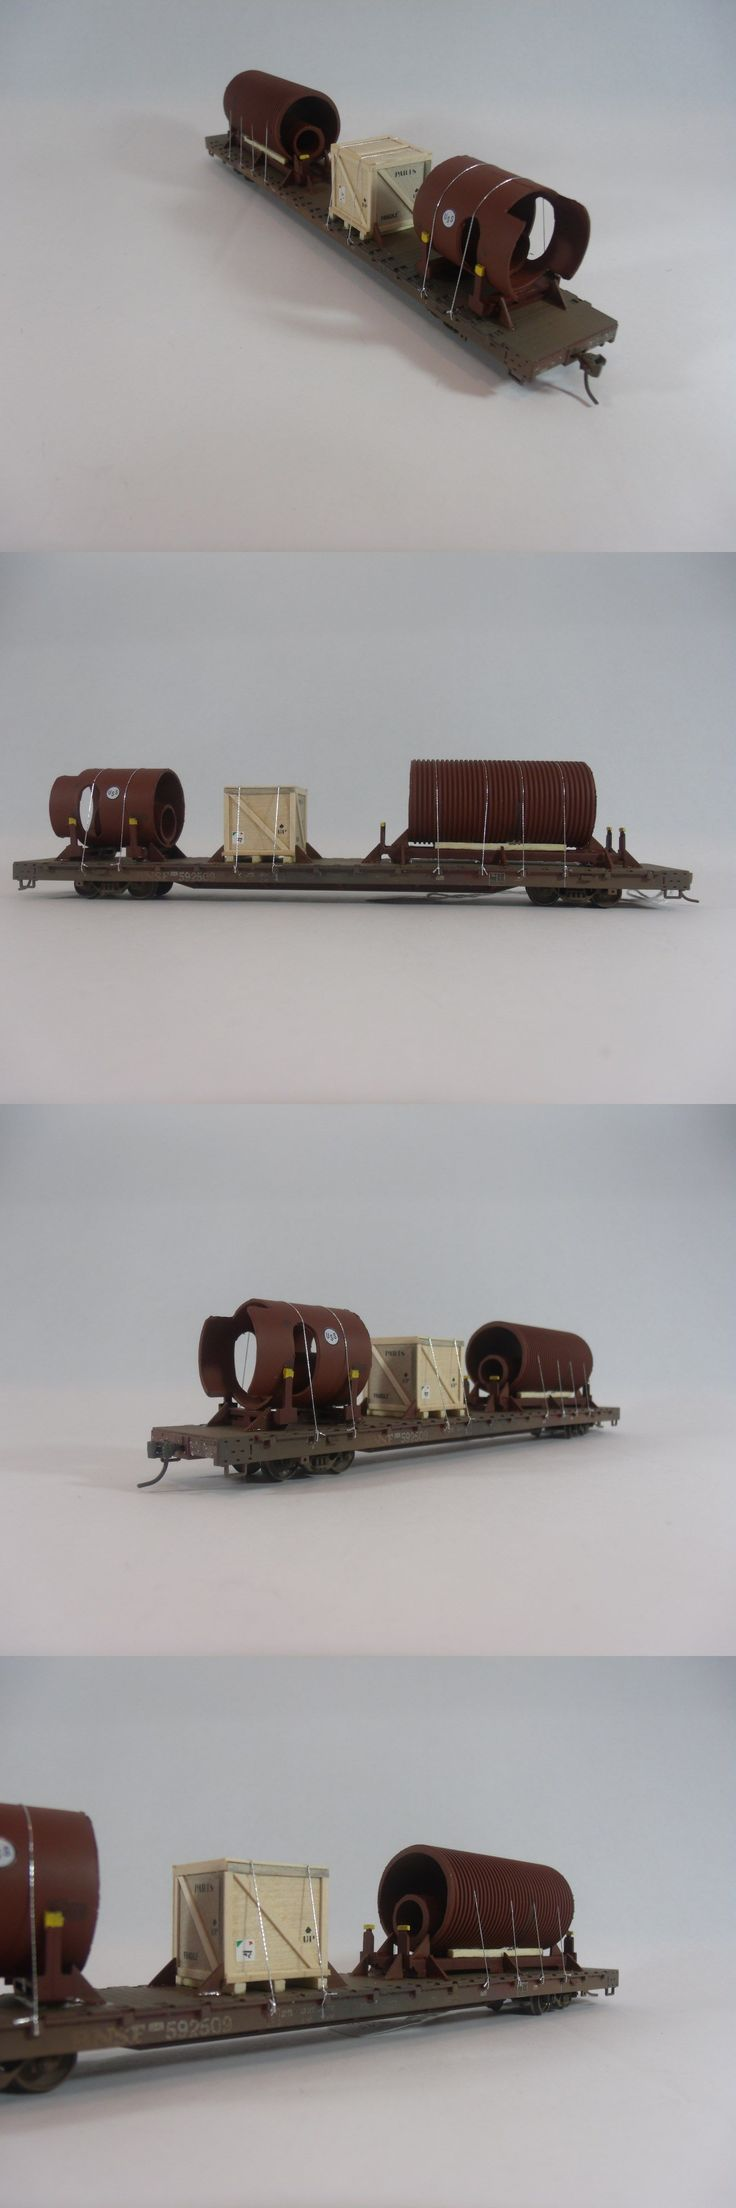 Other HO Scale Parts and Accs 11644: Ho Scale Model Railroads And Trains - Custom Load Ho Scale Railroad -> BUY IT NOW ONLY: $78.95 on eBay!